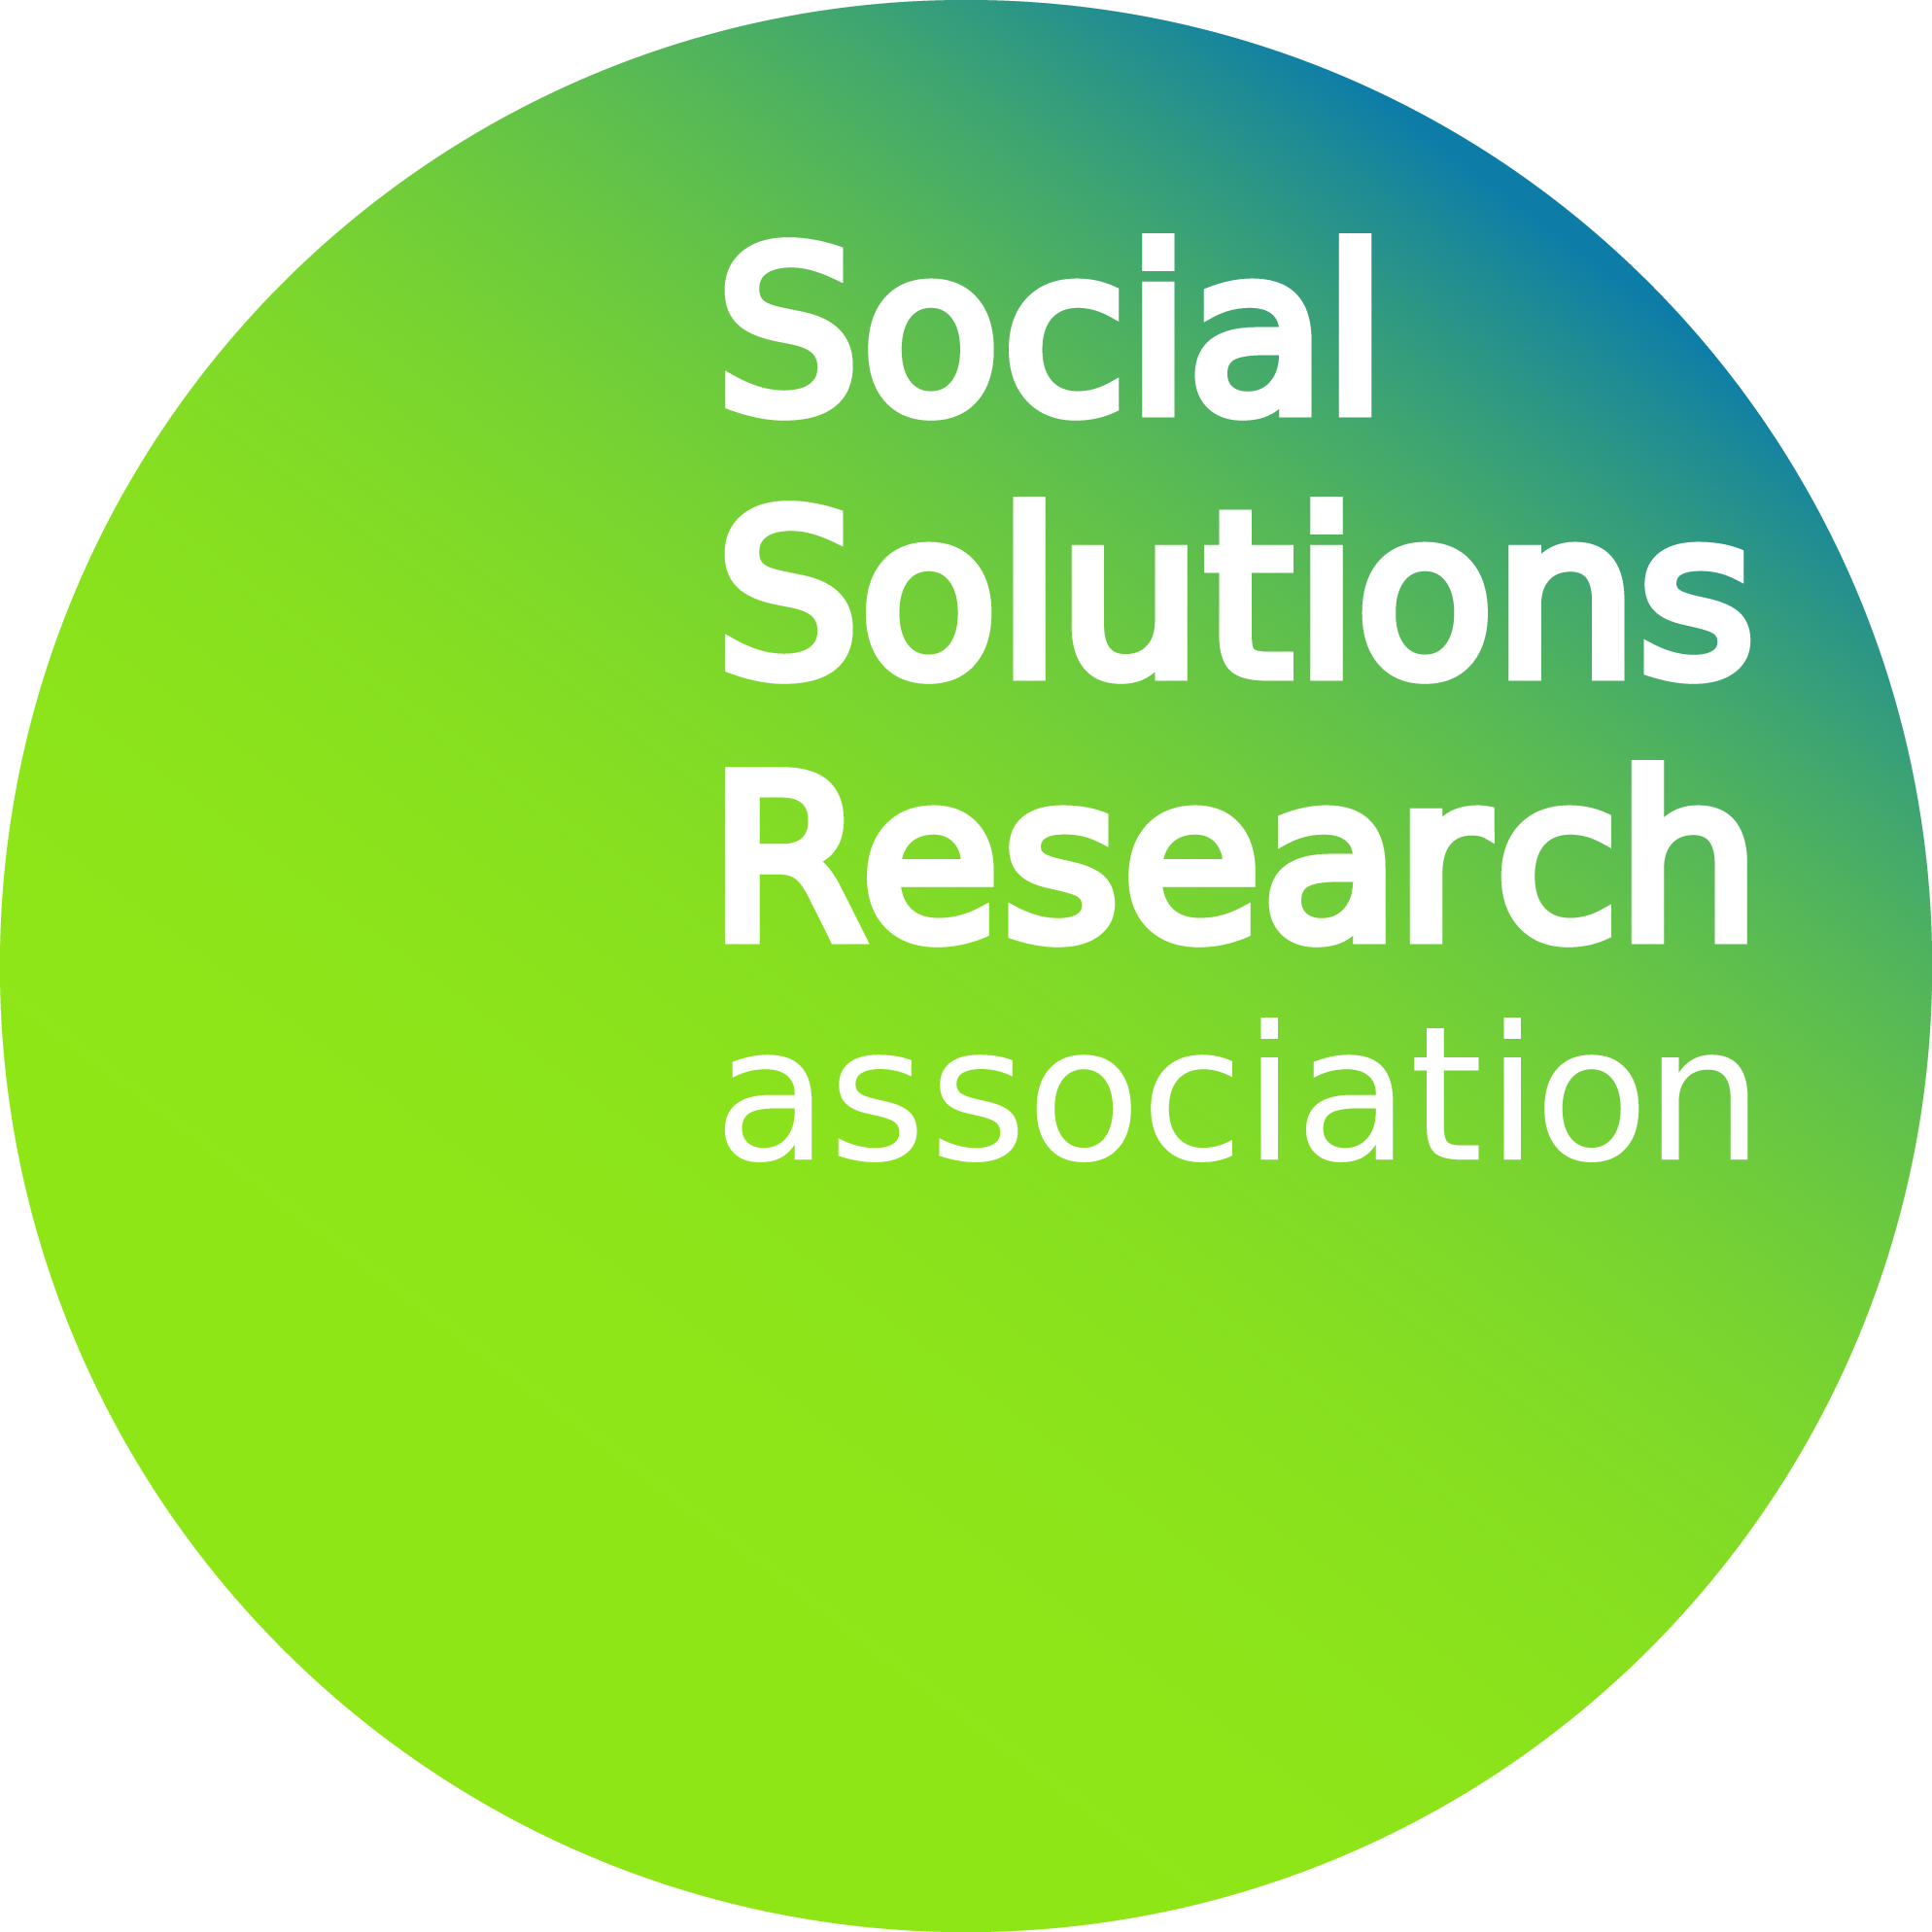 Social Solutions Research